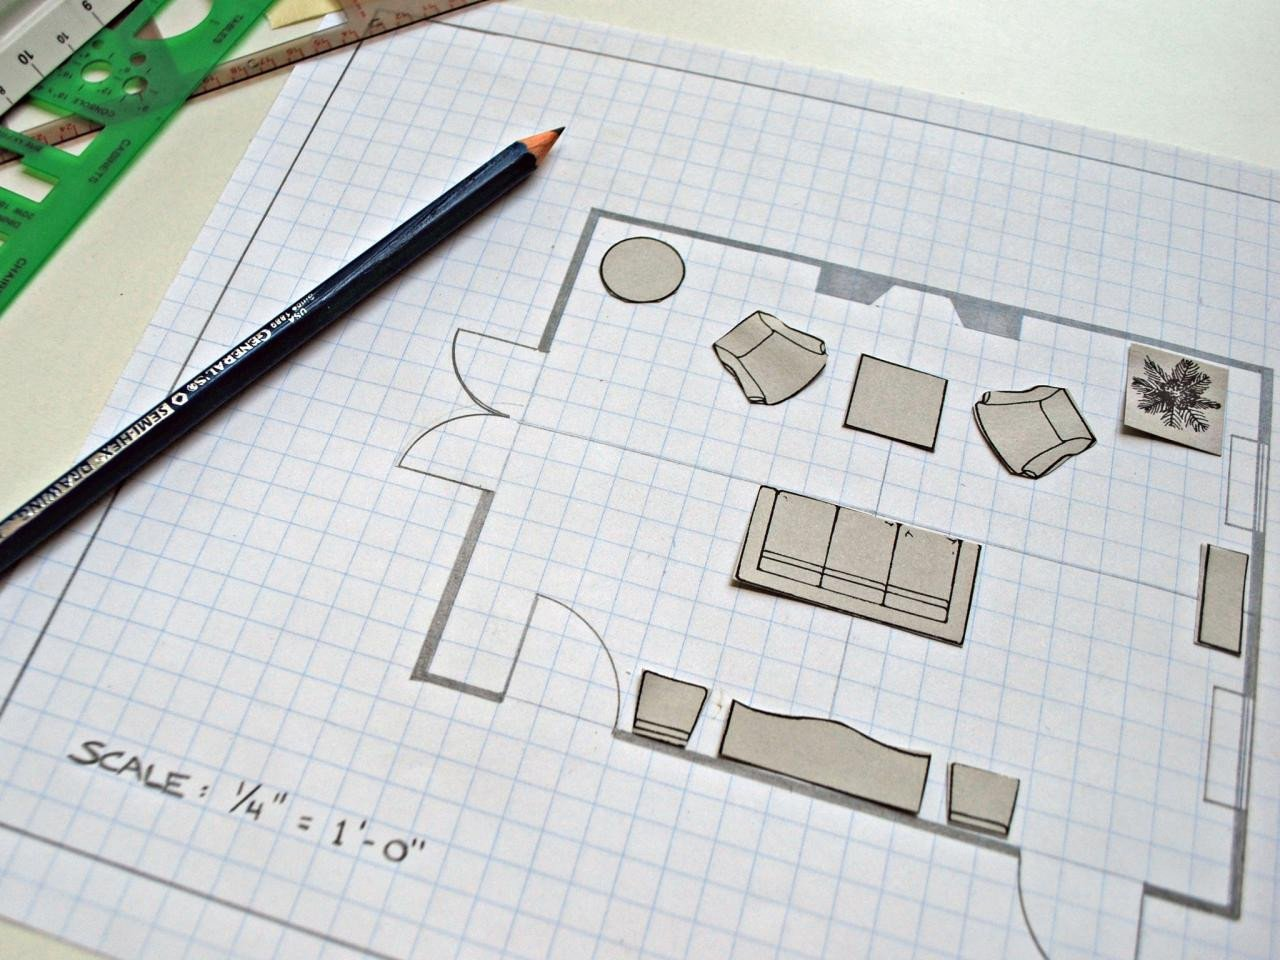 12x12 Bedroom Furniture Layout Lovely How to Create A Floor Plan and Furniture Layout